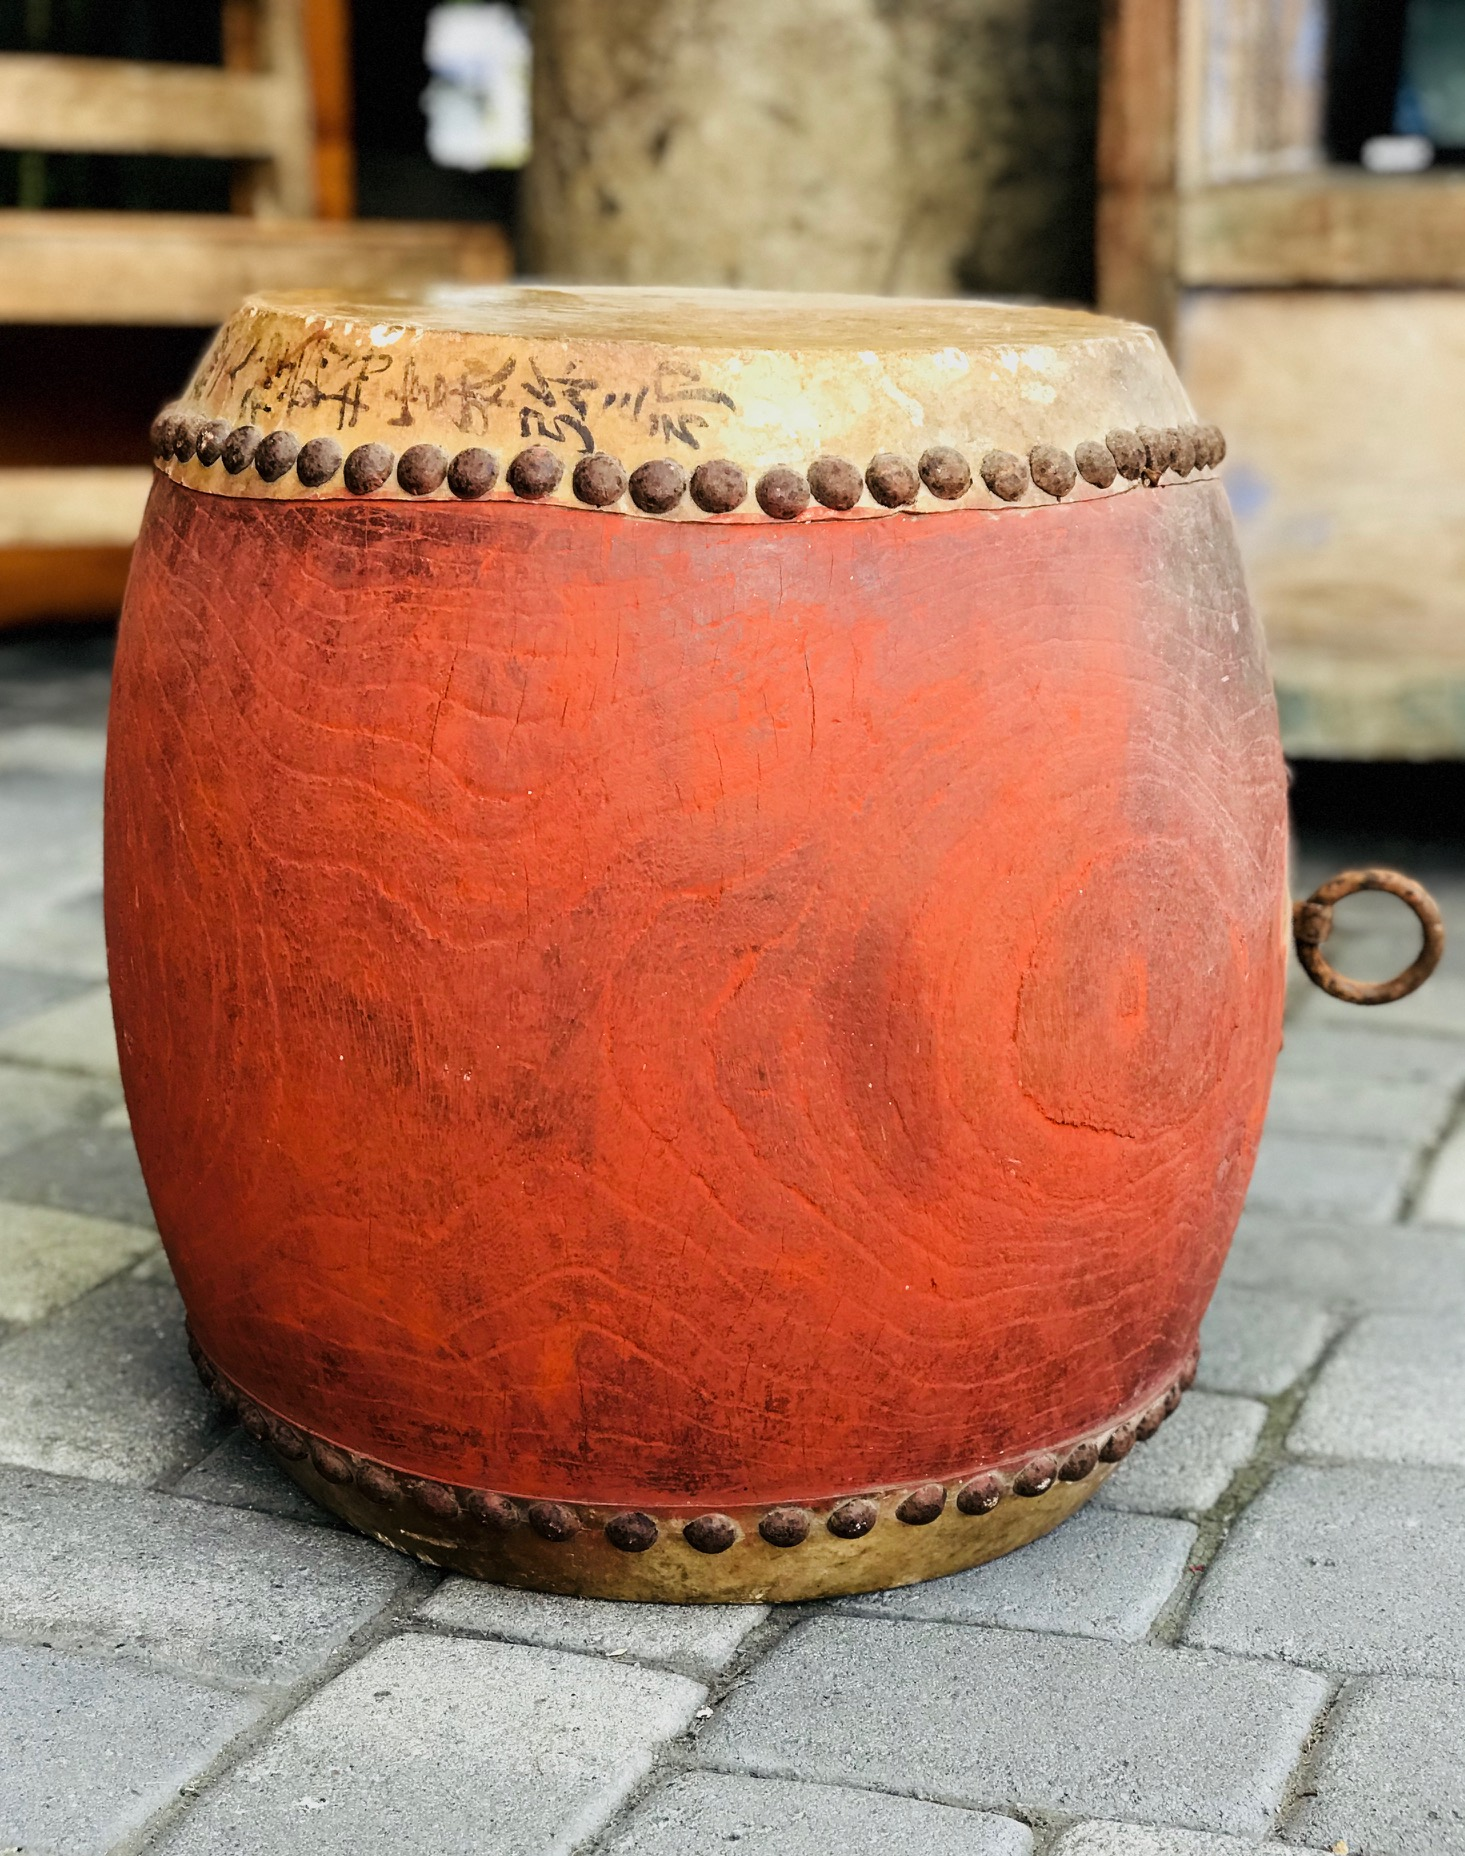 "Musical Instrument, Early 19th c Edo Period Taiko Style (tacked down) Japanese Drum, Keyaki wood (Japanese Red Elm), rawhde, red paint metal tacks, ink, 19"" x 18"", $1250.; thedavidalancollection.com , solana beach, ca"